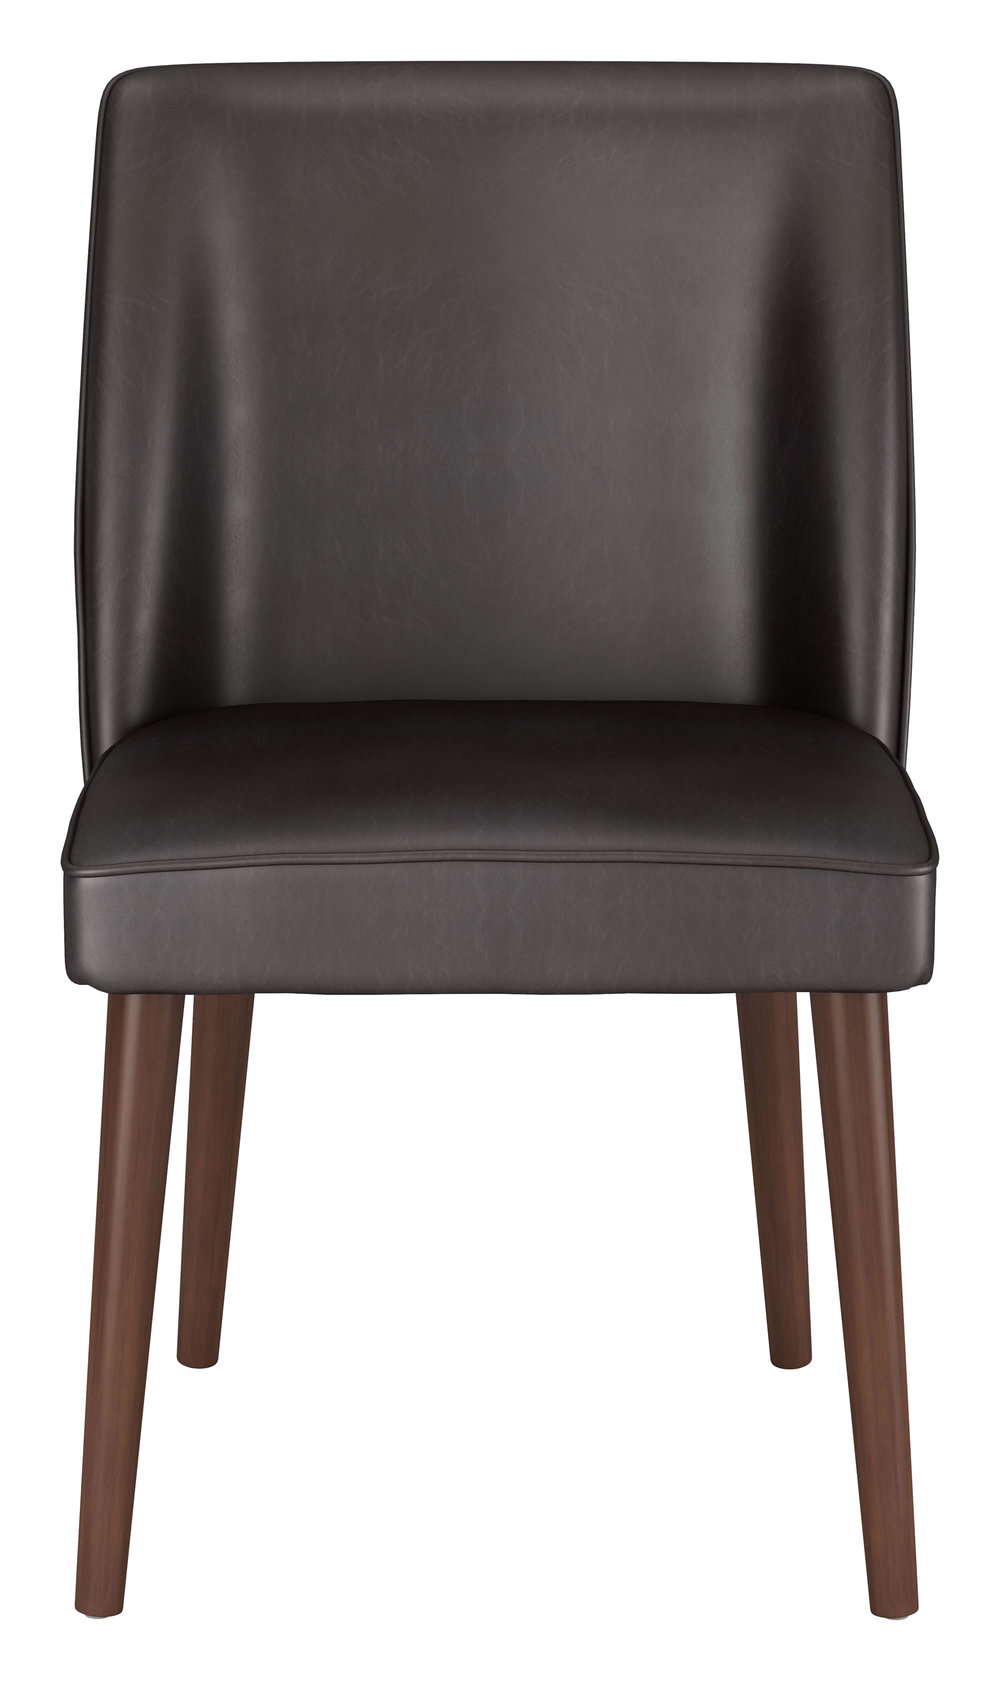 Zuo Modern Contemporary - Kennedy Dining Chair - Set of 2 - Brown